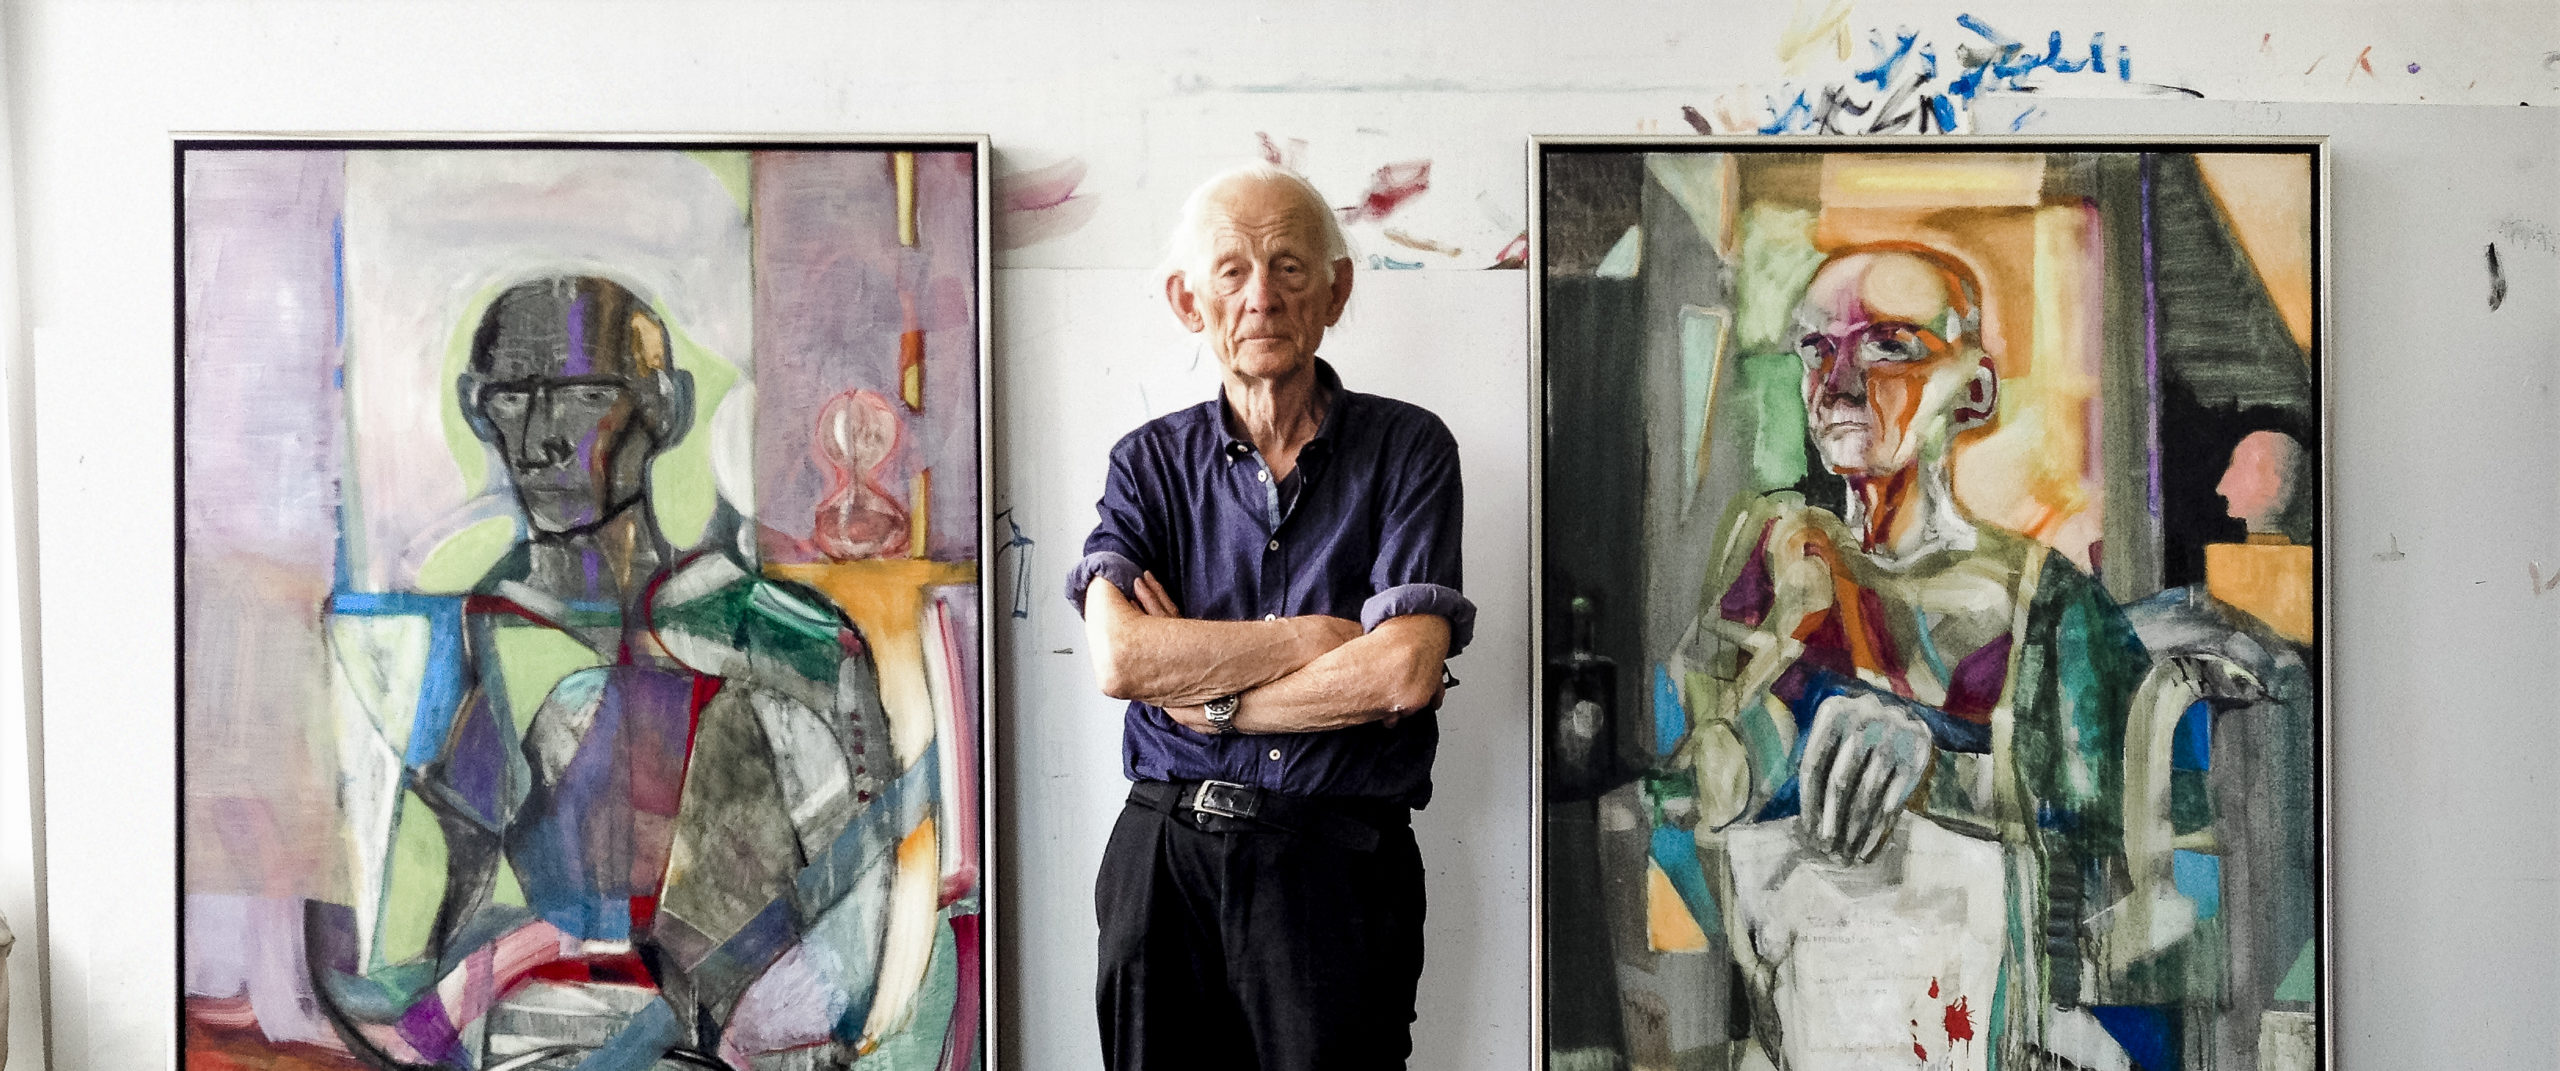 90 year old Artist Håkon Bleken in his studio.